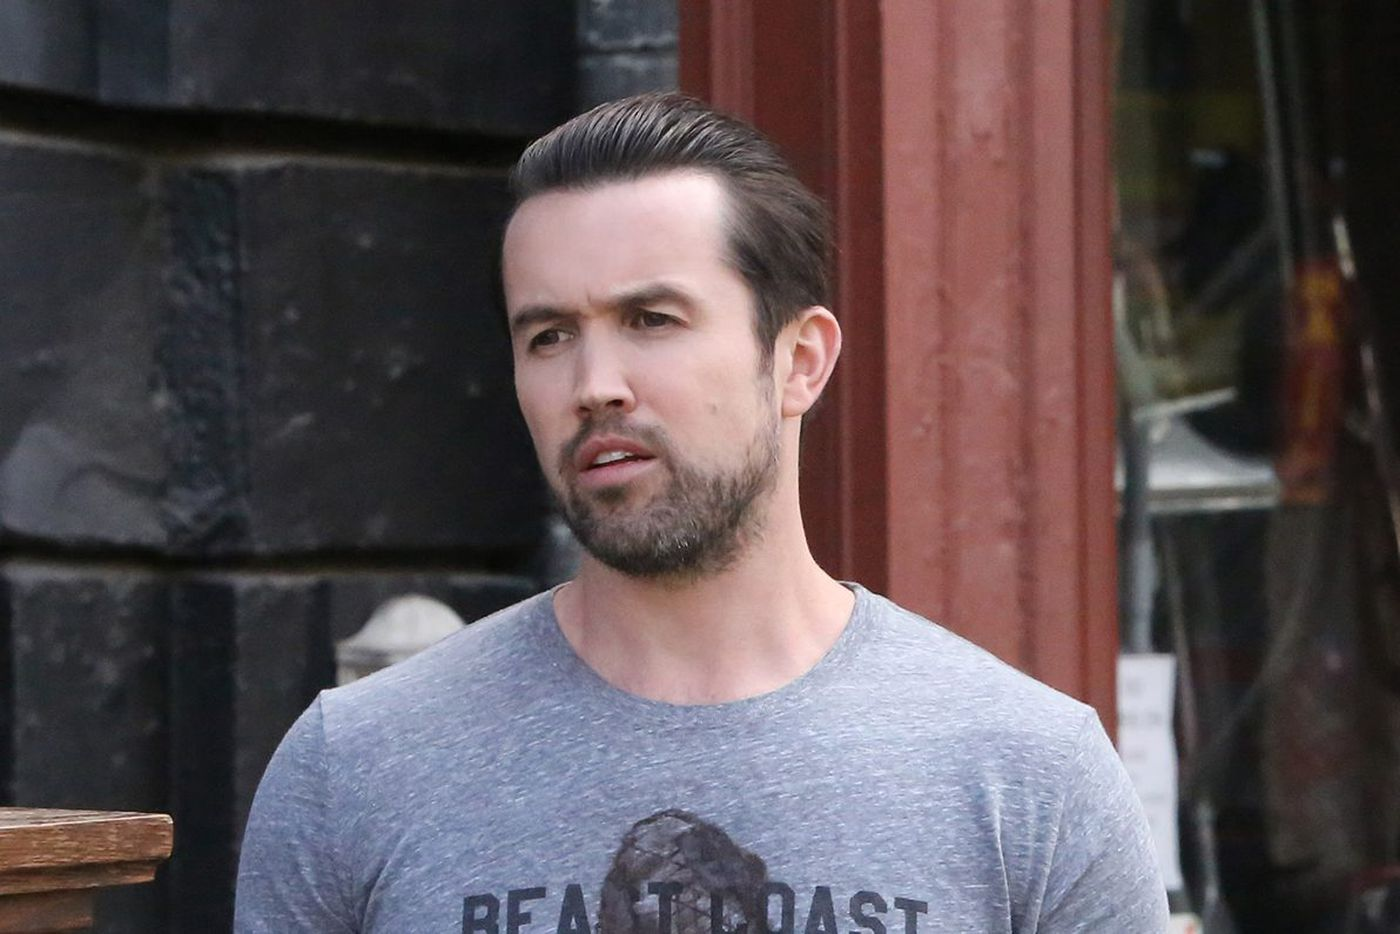 Dock Street Brewery wants 'It's Always Sunny's' Mac to visit so bad, they made a beer about it